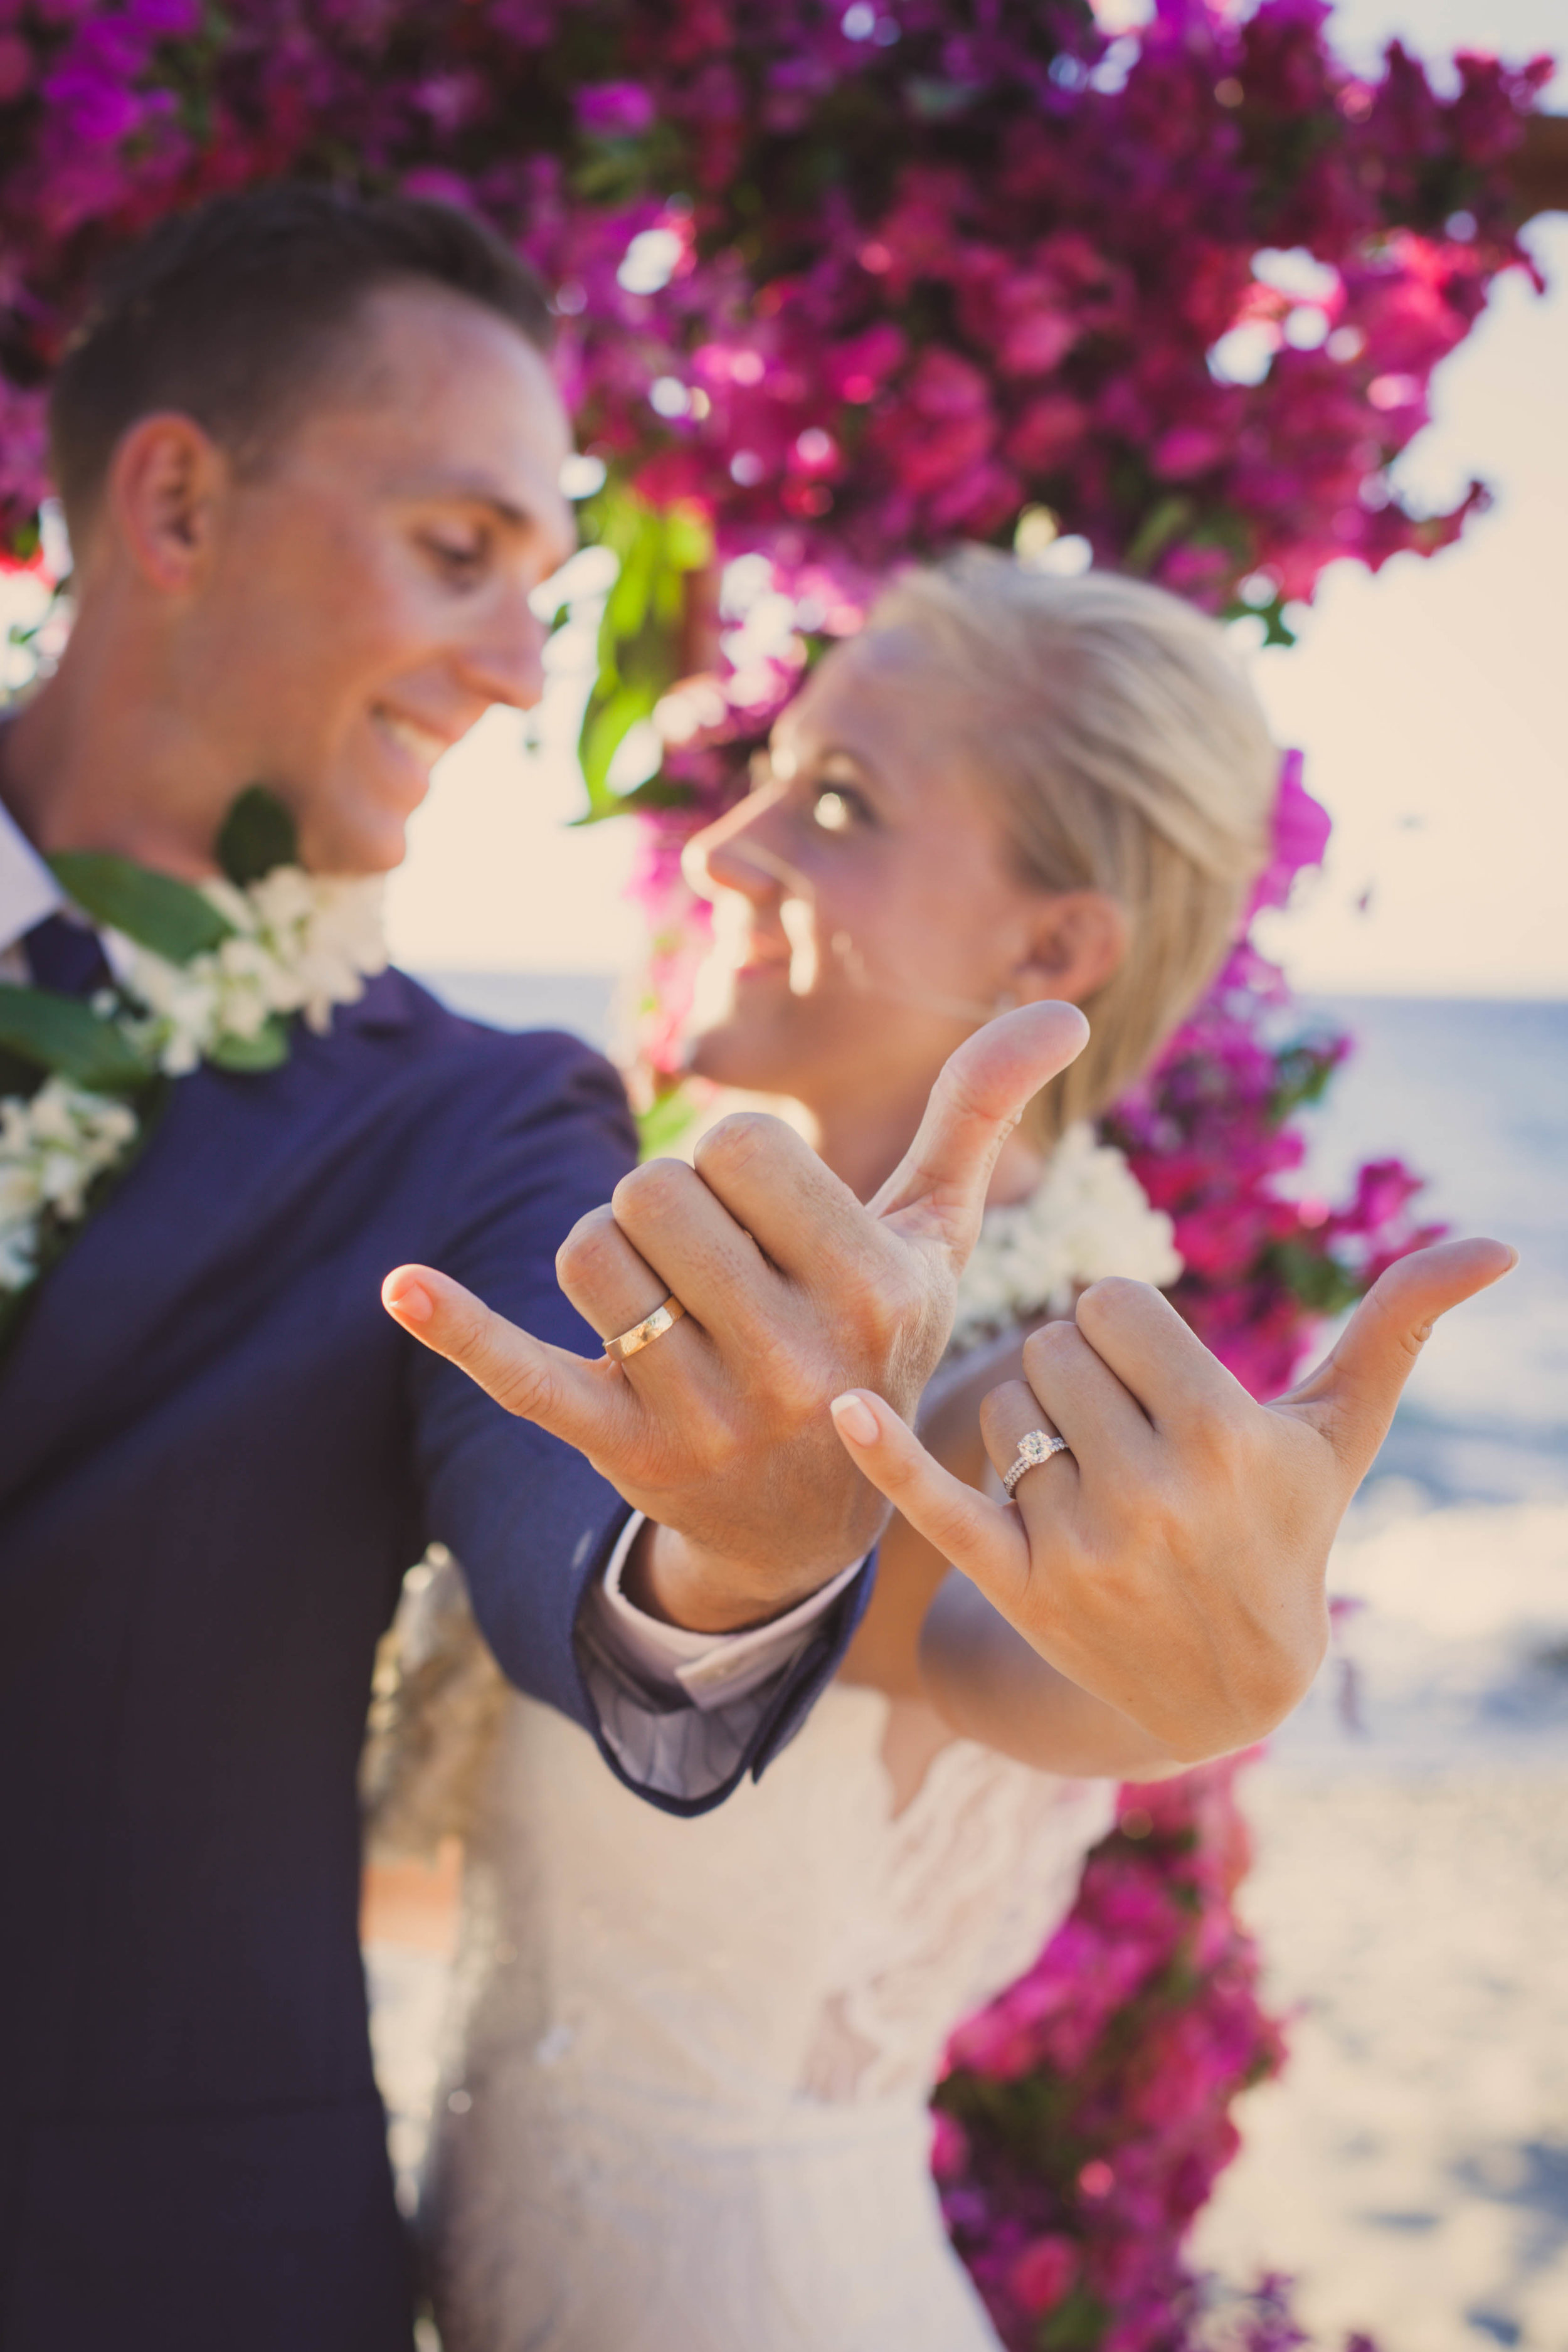 big island hawaii fairmont orchid beach wedding © kelilina photography 20170812180432-1.jpg